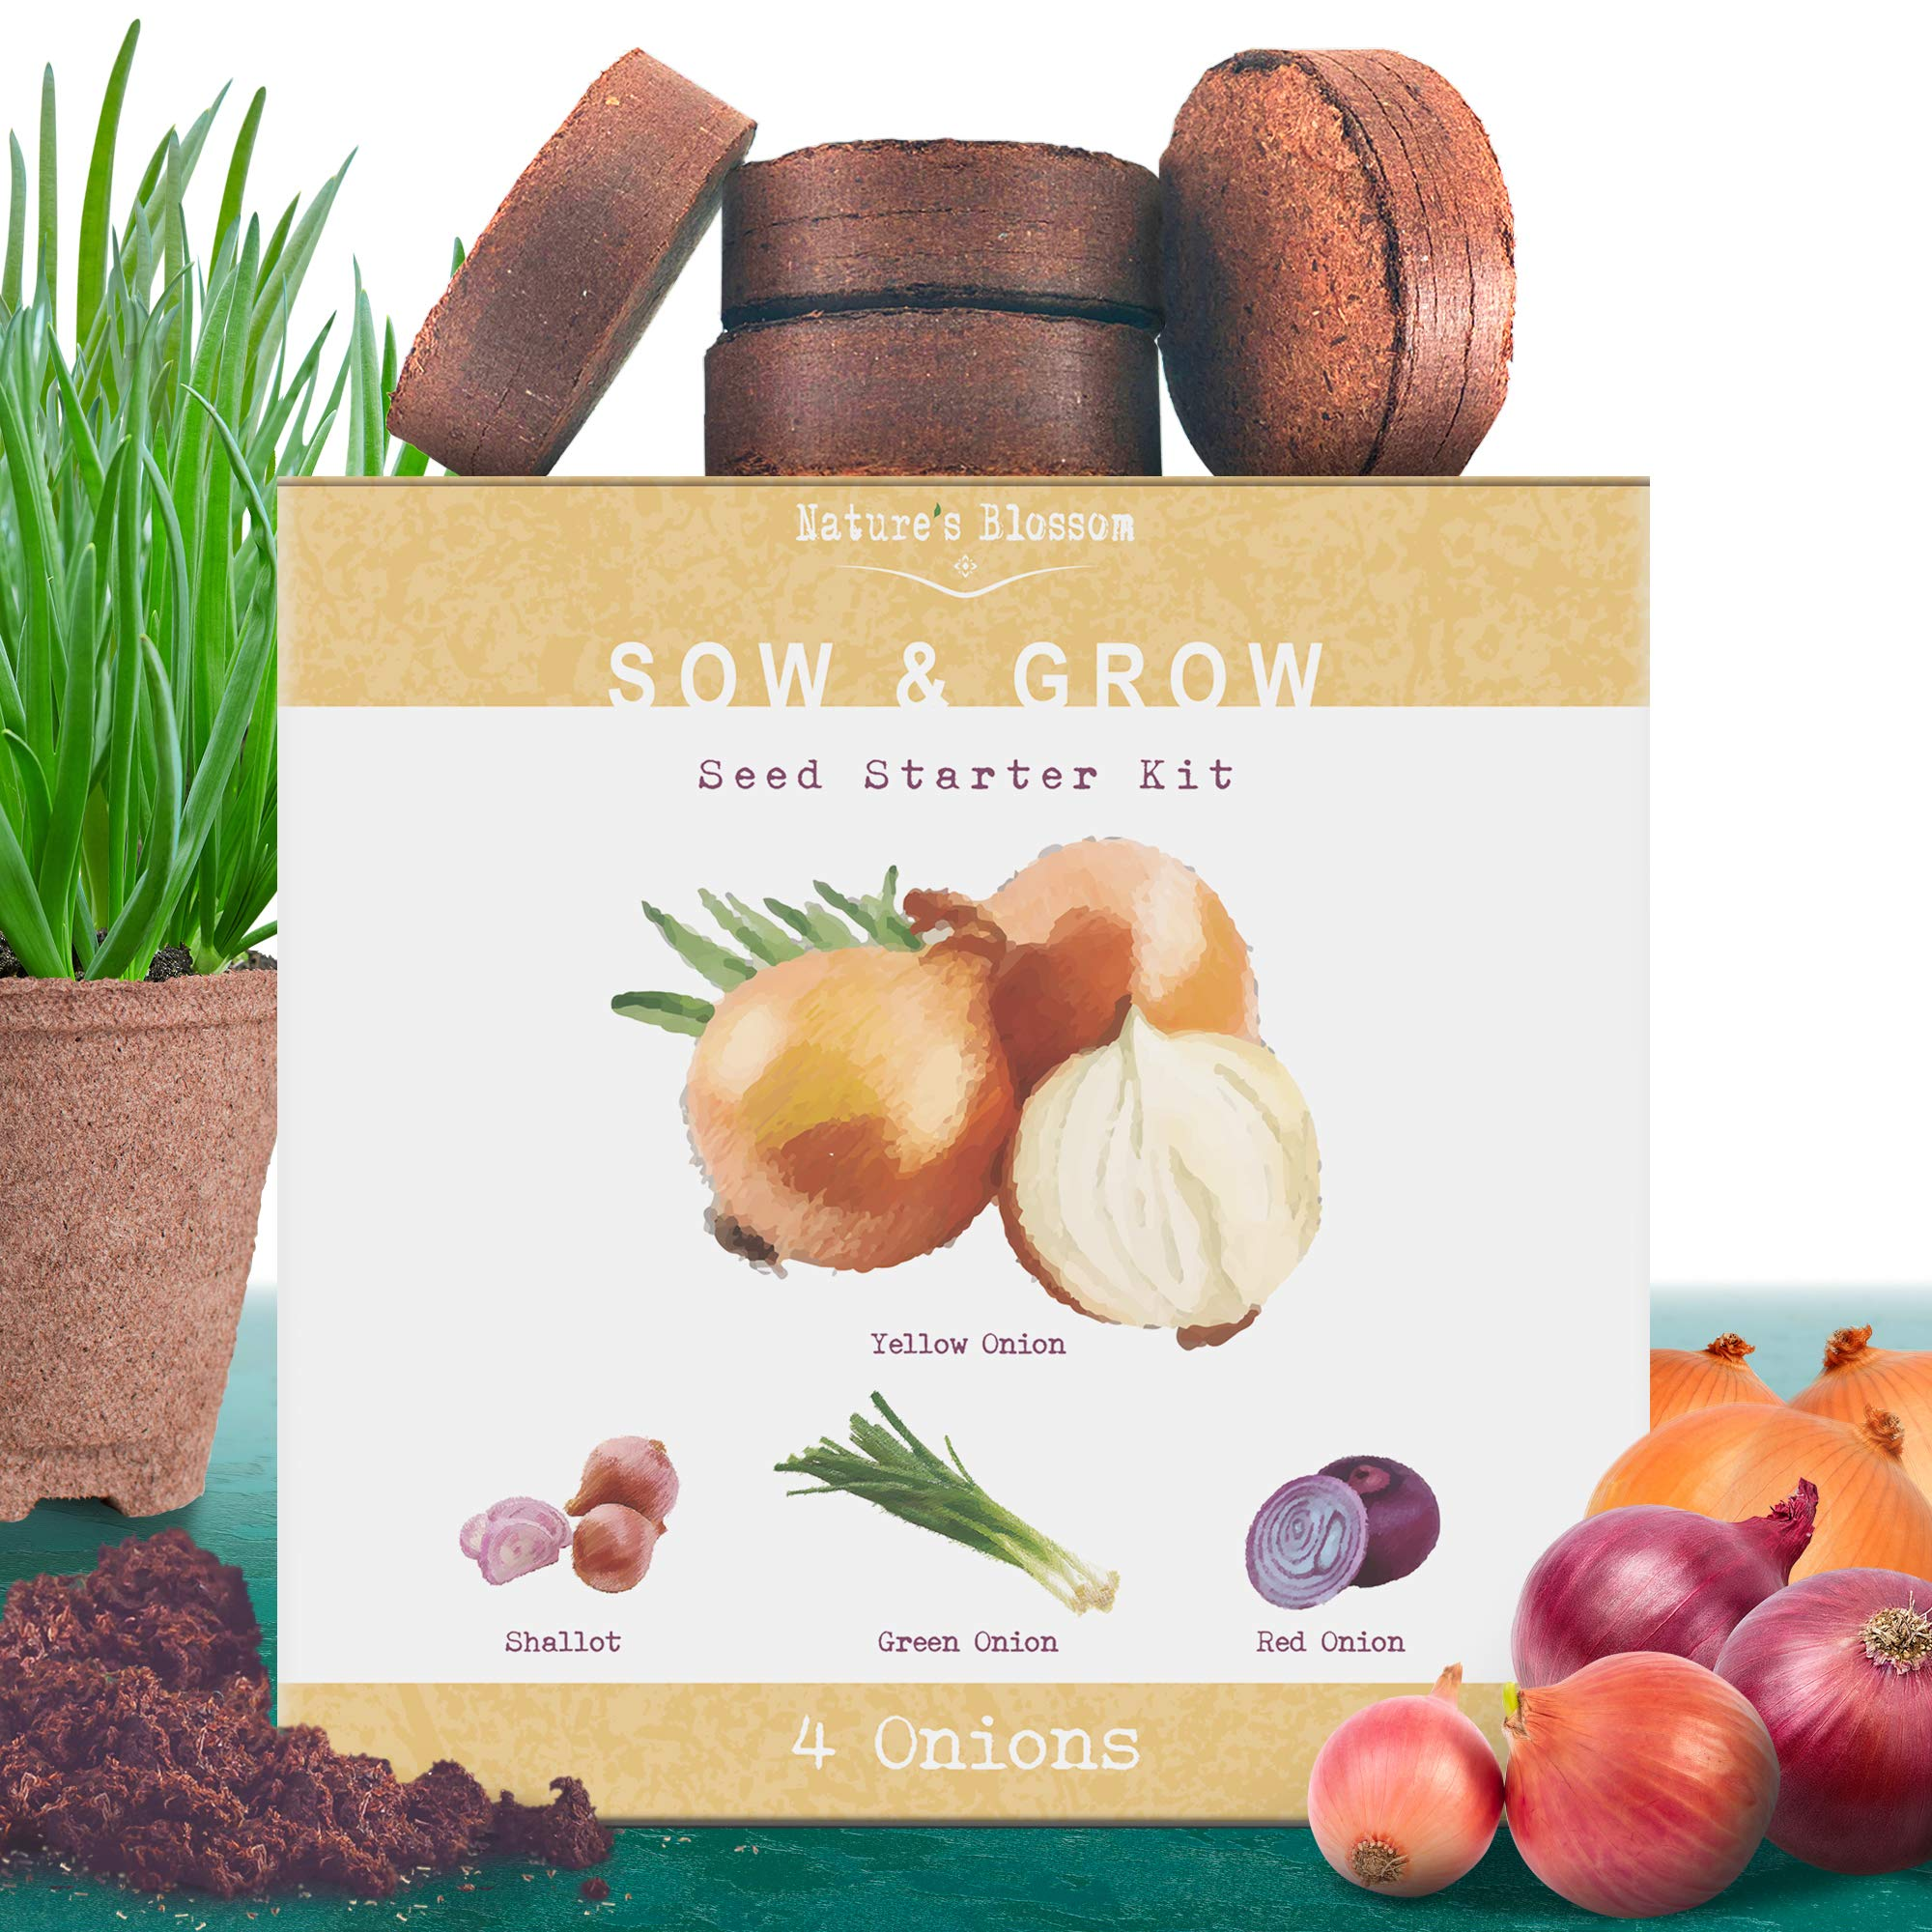 Nature's Blossom Onion Growing Kit. 4 Types of Onions to Grow from Seed: Red Onions, Green, Yellow and Shallot Onion Organic Seed. Complete Indoor Outdoor Beginners Gardening Set.